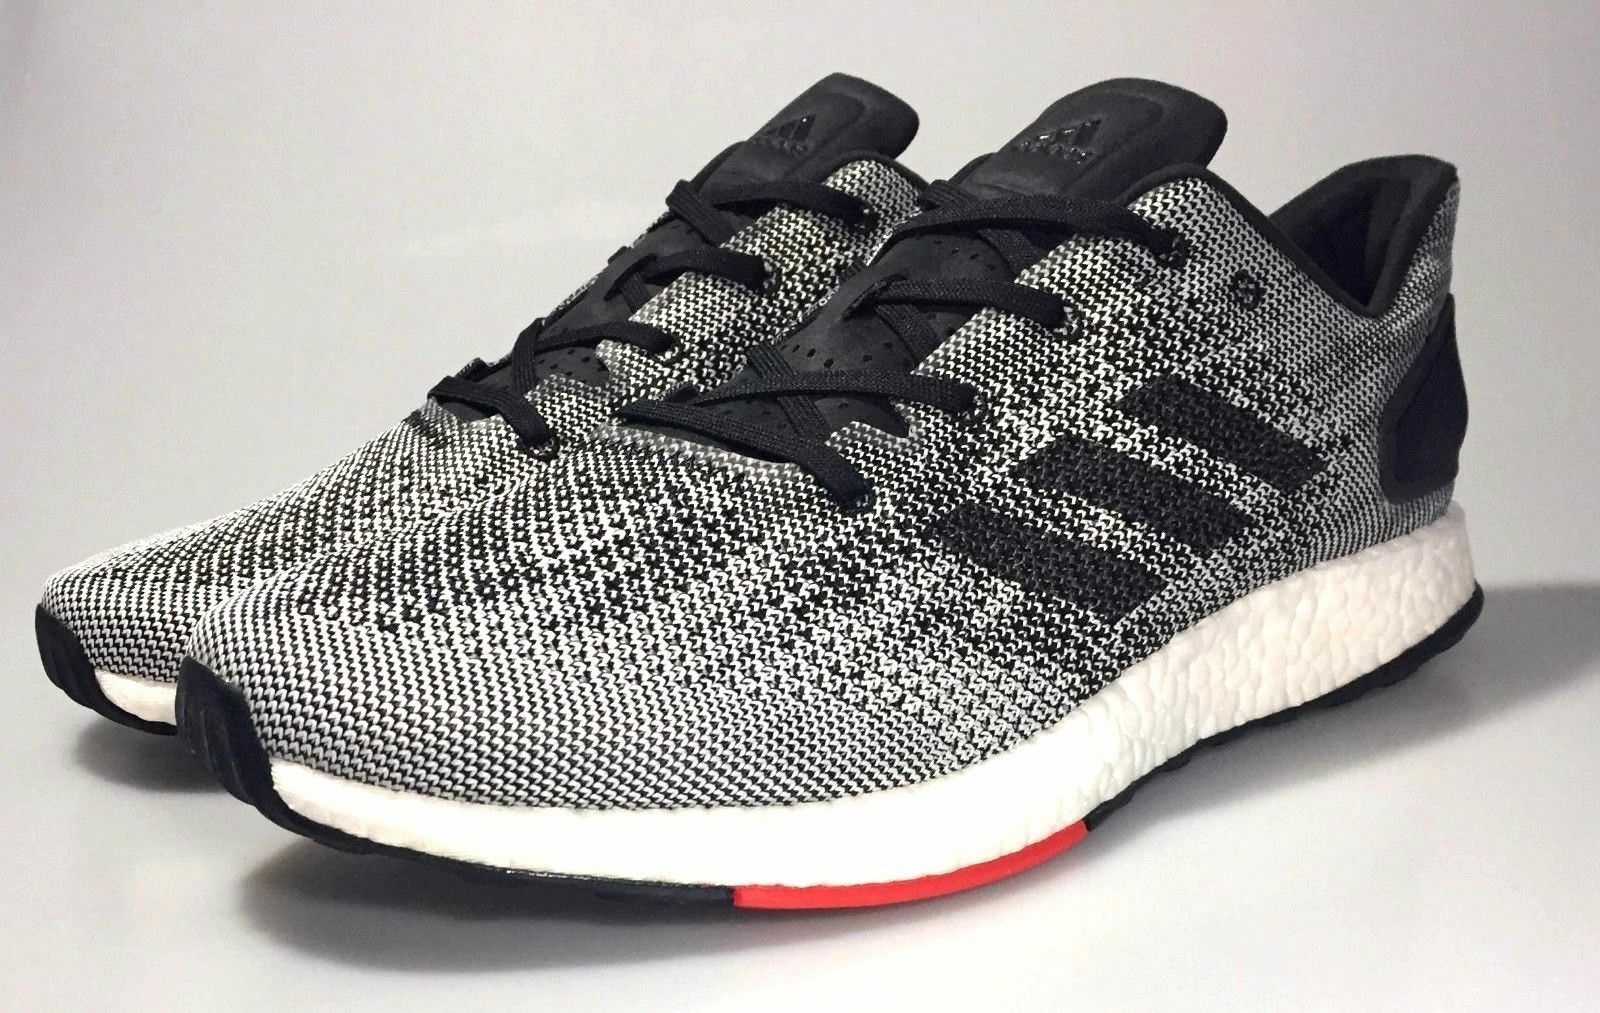 98686ad399476 Adidas Pureboost DPR DPR DPR NEW Men s Running Shoes Boost S80993 Gray  White Black Red 282d90